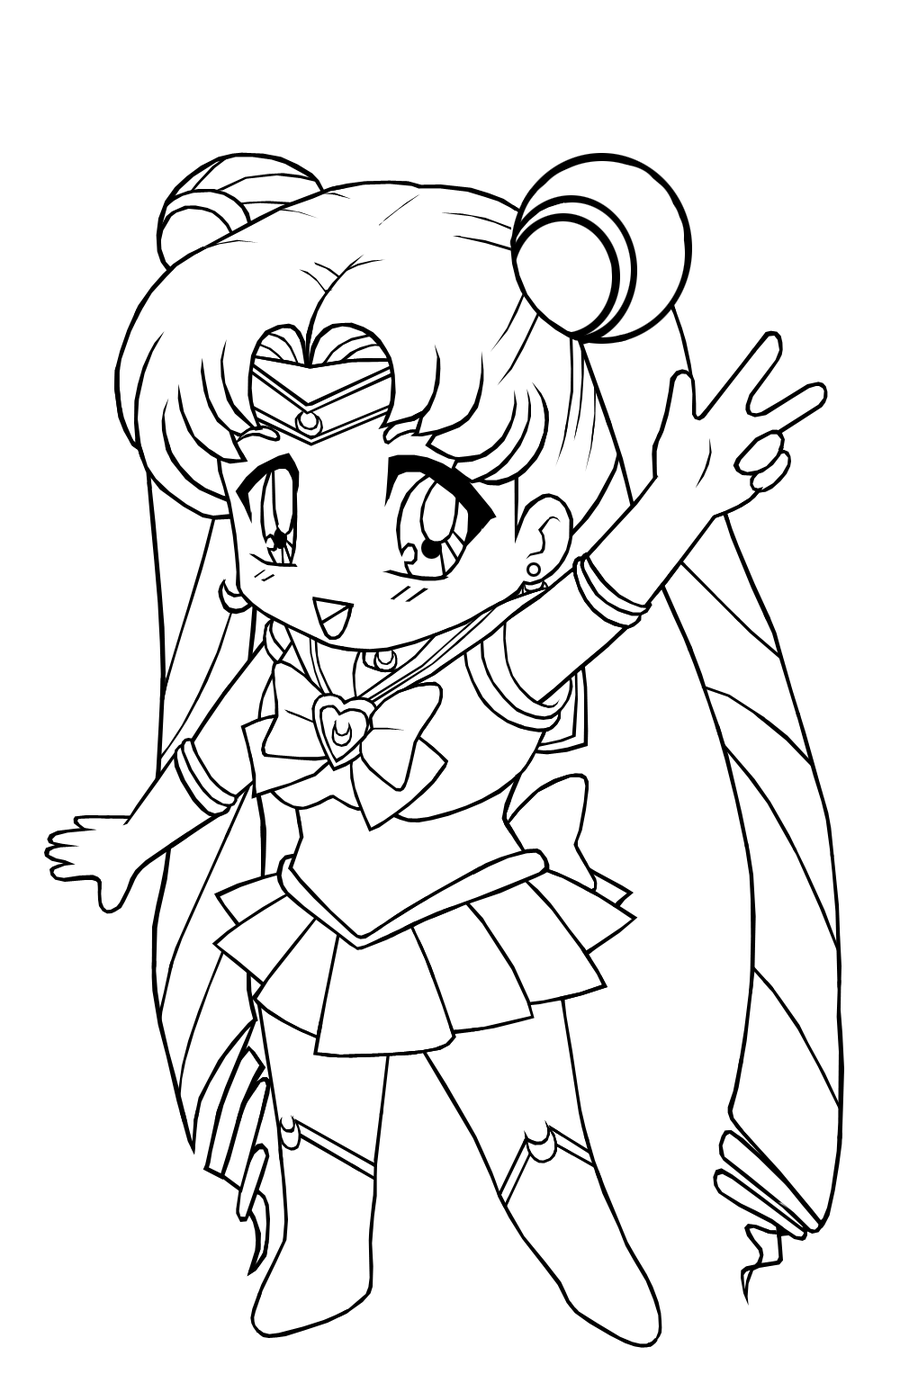 cute anime coloring pages to print chibi coloring pages to download and print for free cute coloring print to anime pages